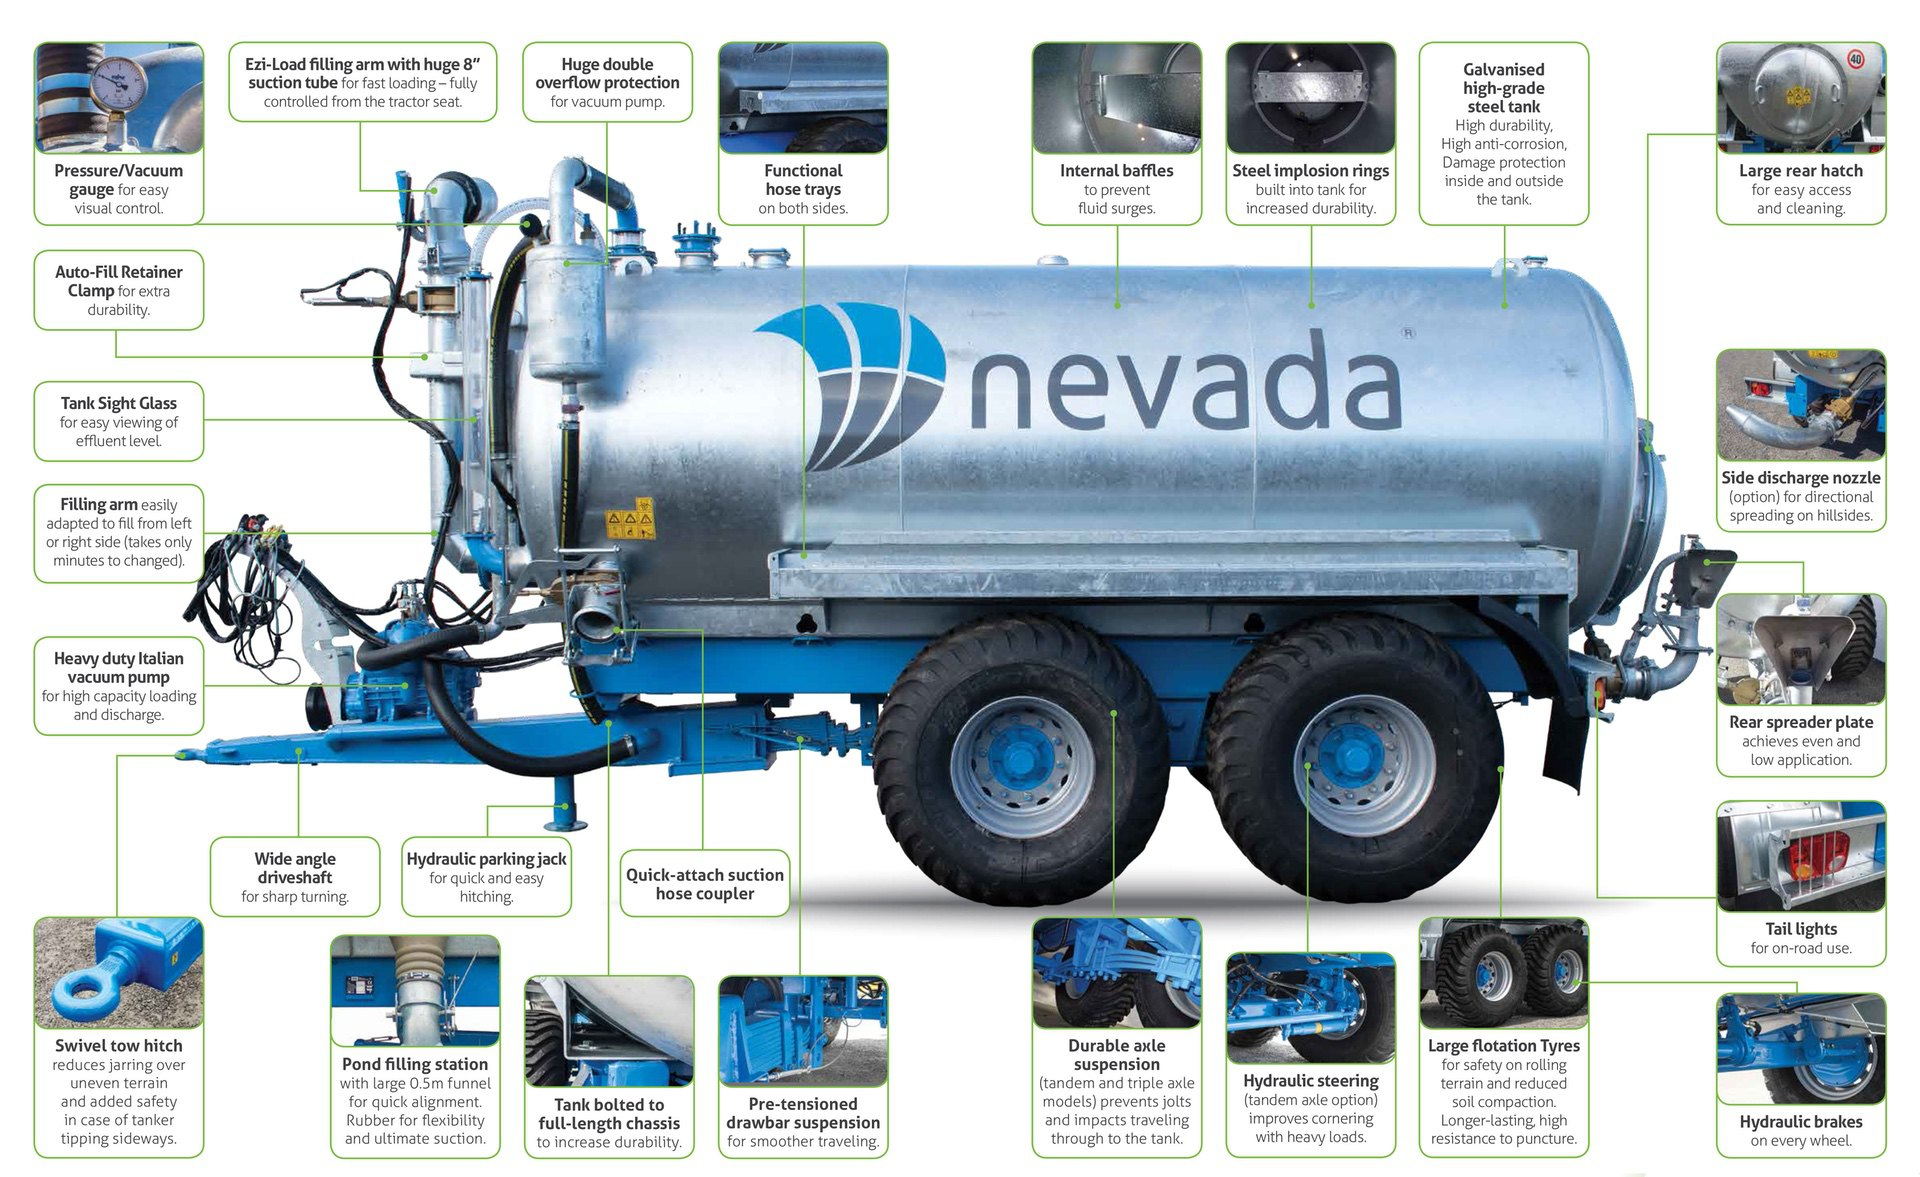 Nevada Tanker Features